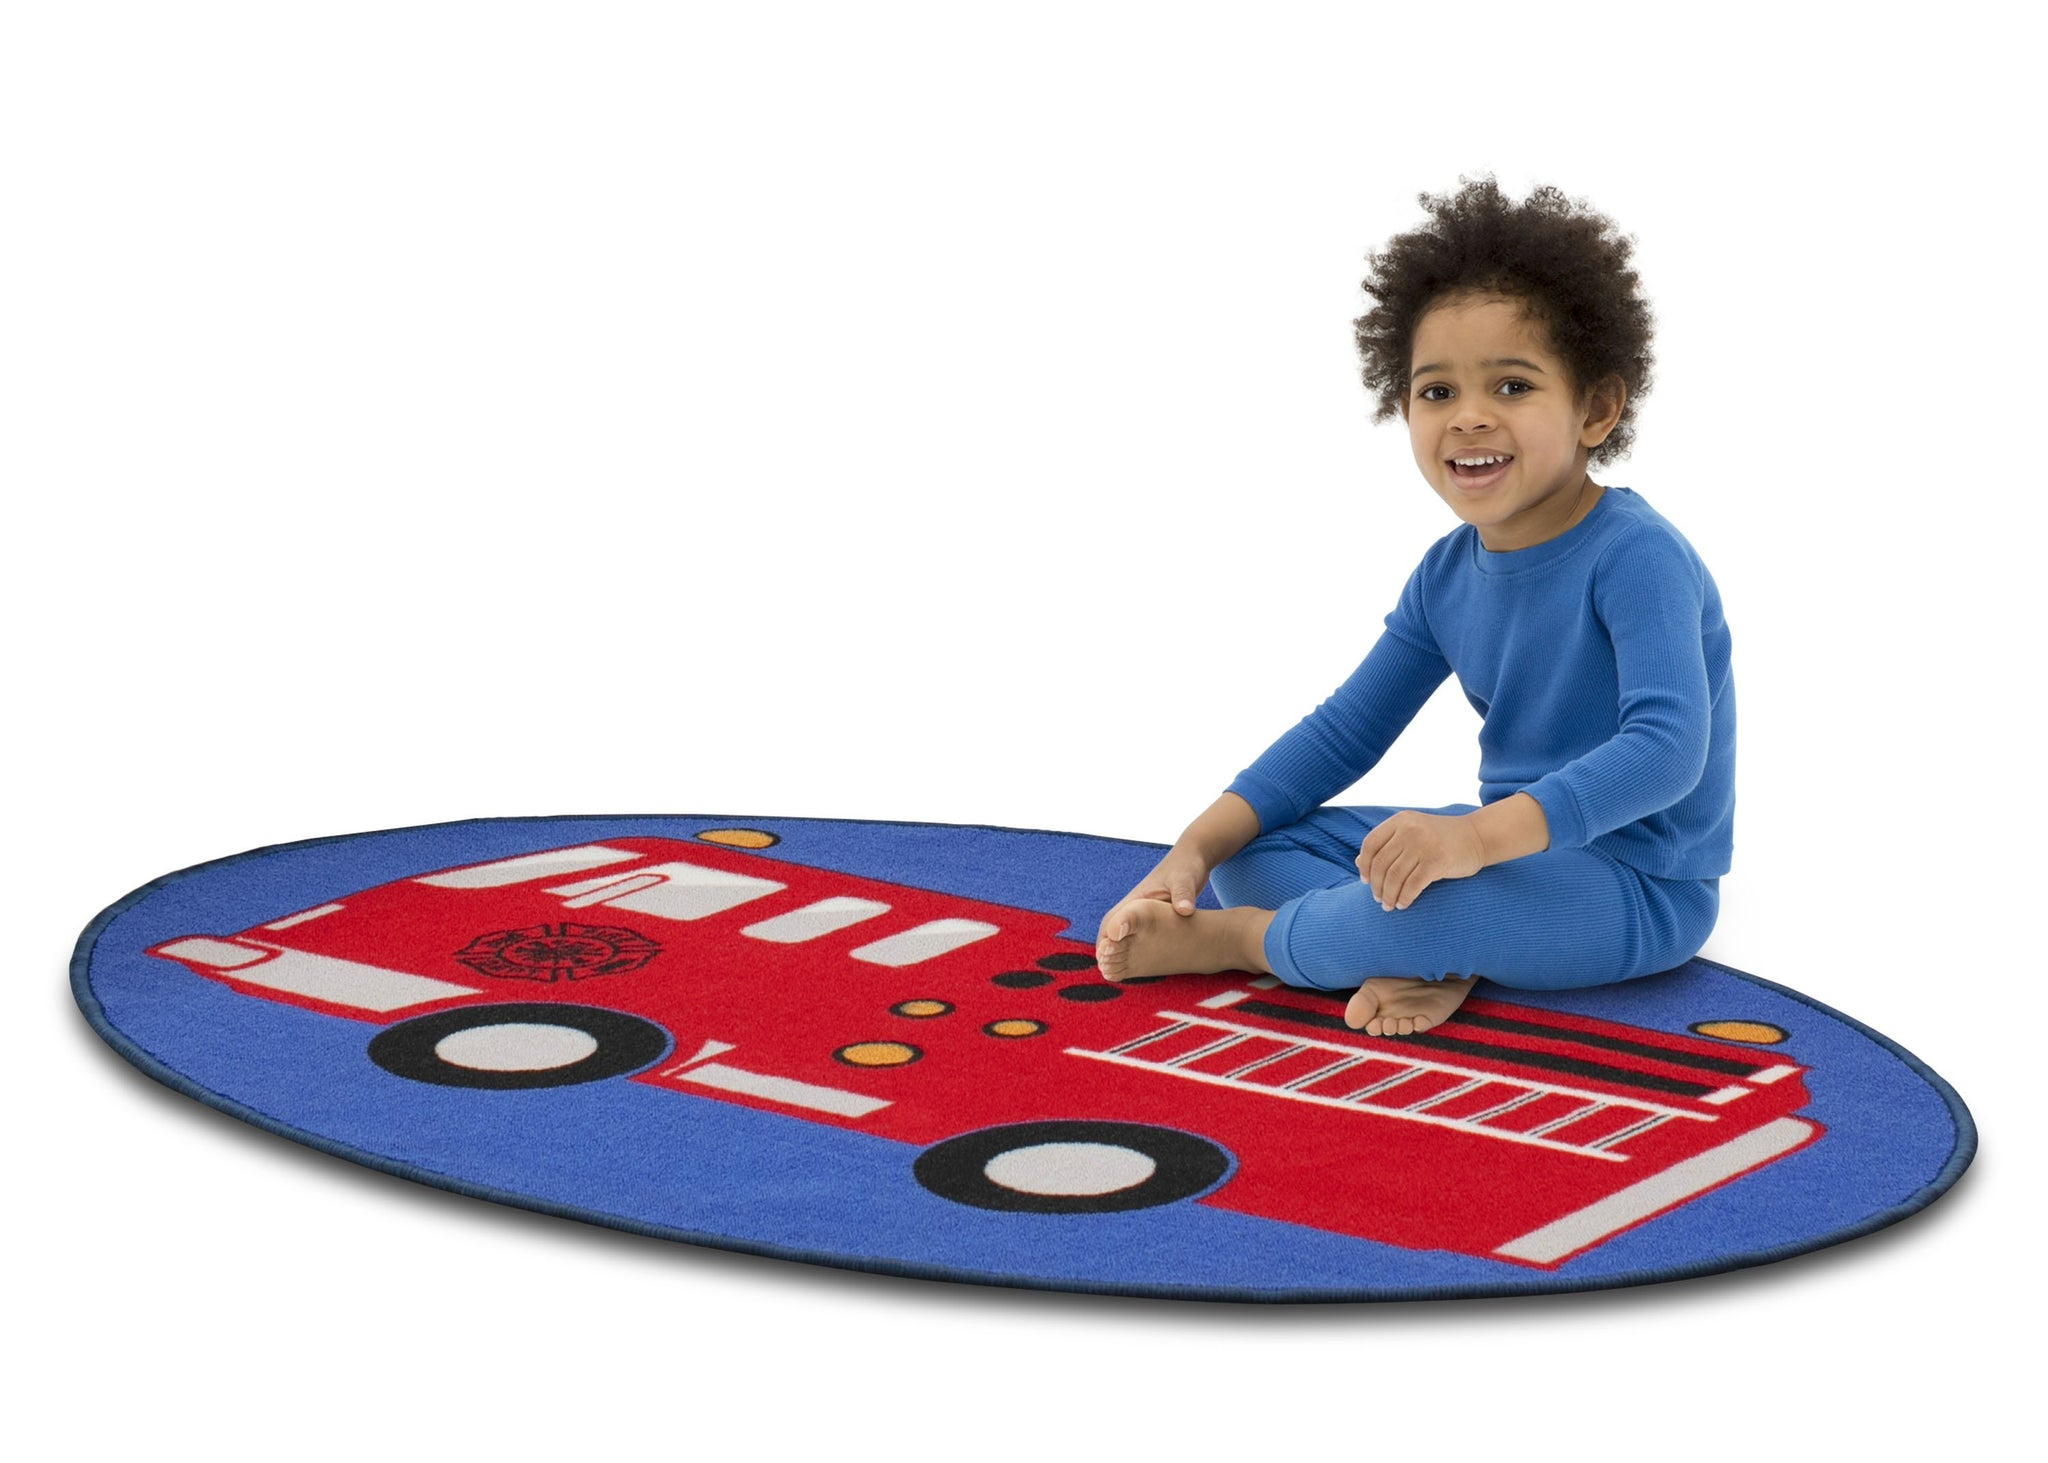 Delta Children Firetruck (3211) Non-Slip Area Rug for Boys, Model View